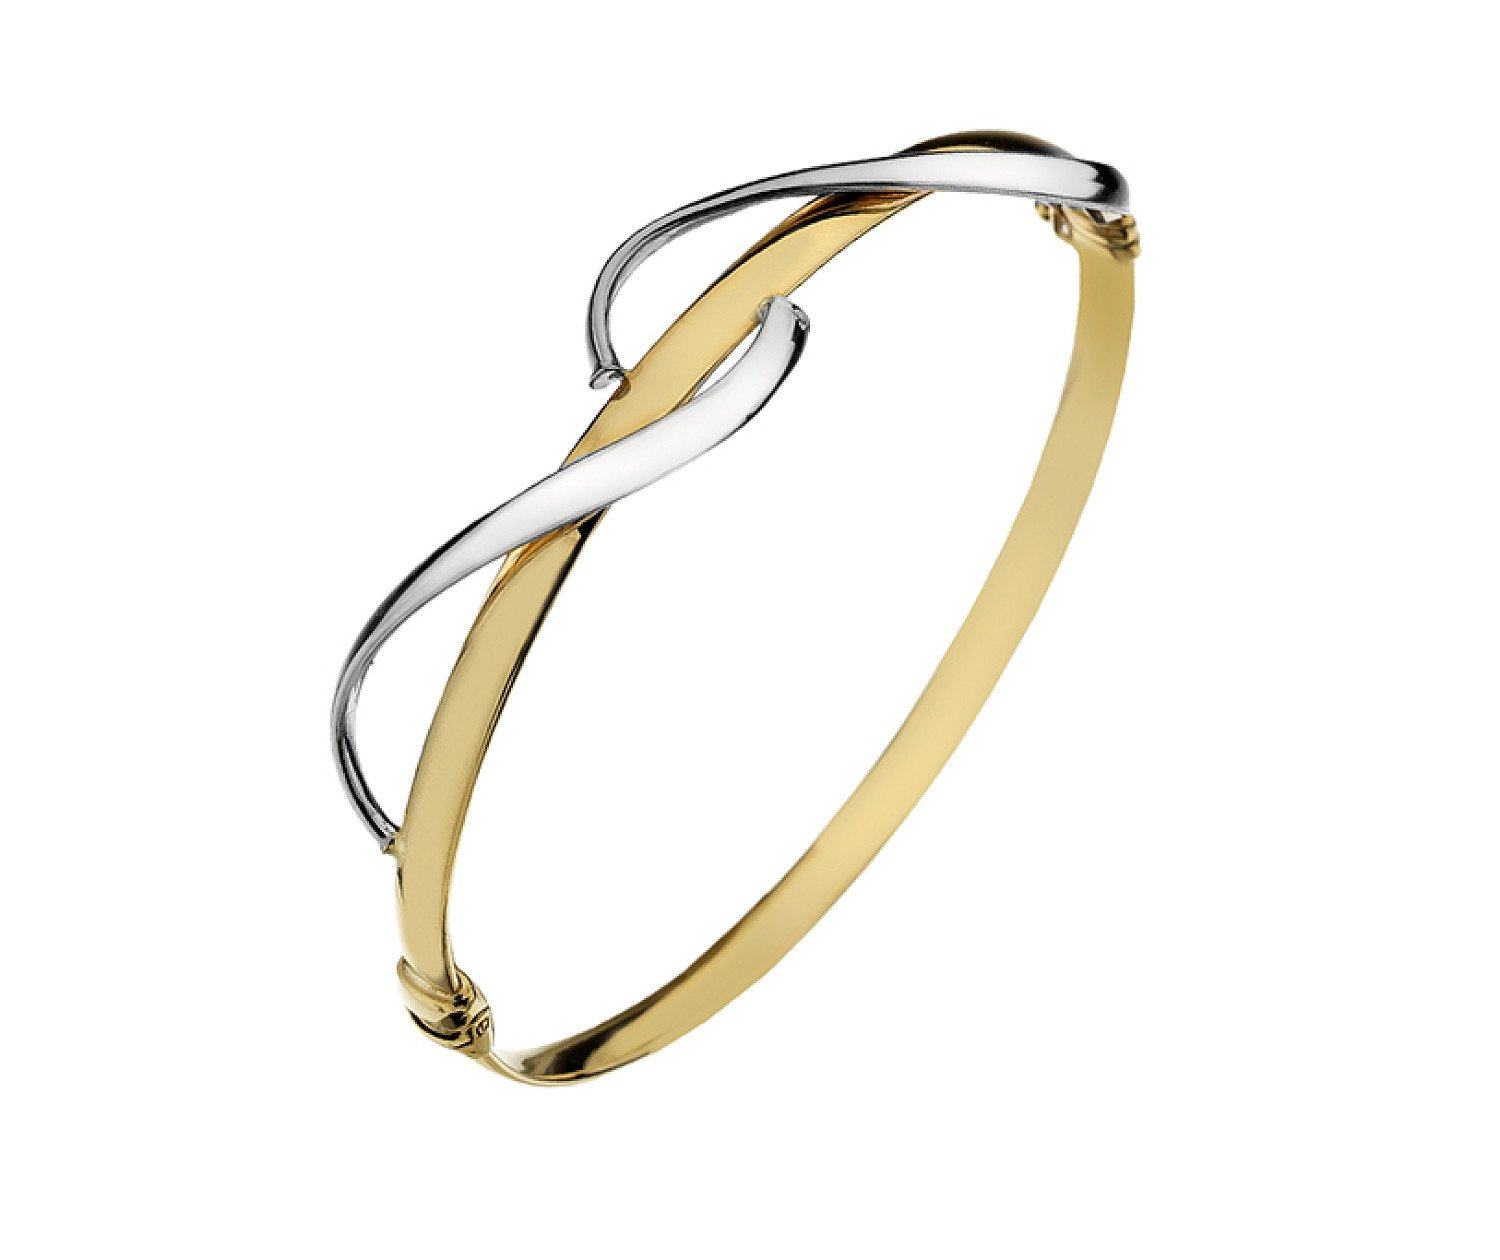 9ct yellow & white gold, wave detail hollow bangle from Callibeau Jewellery